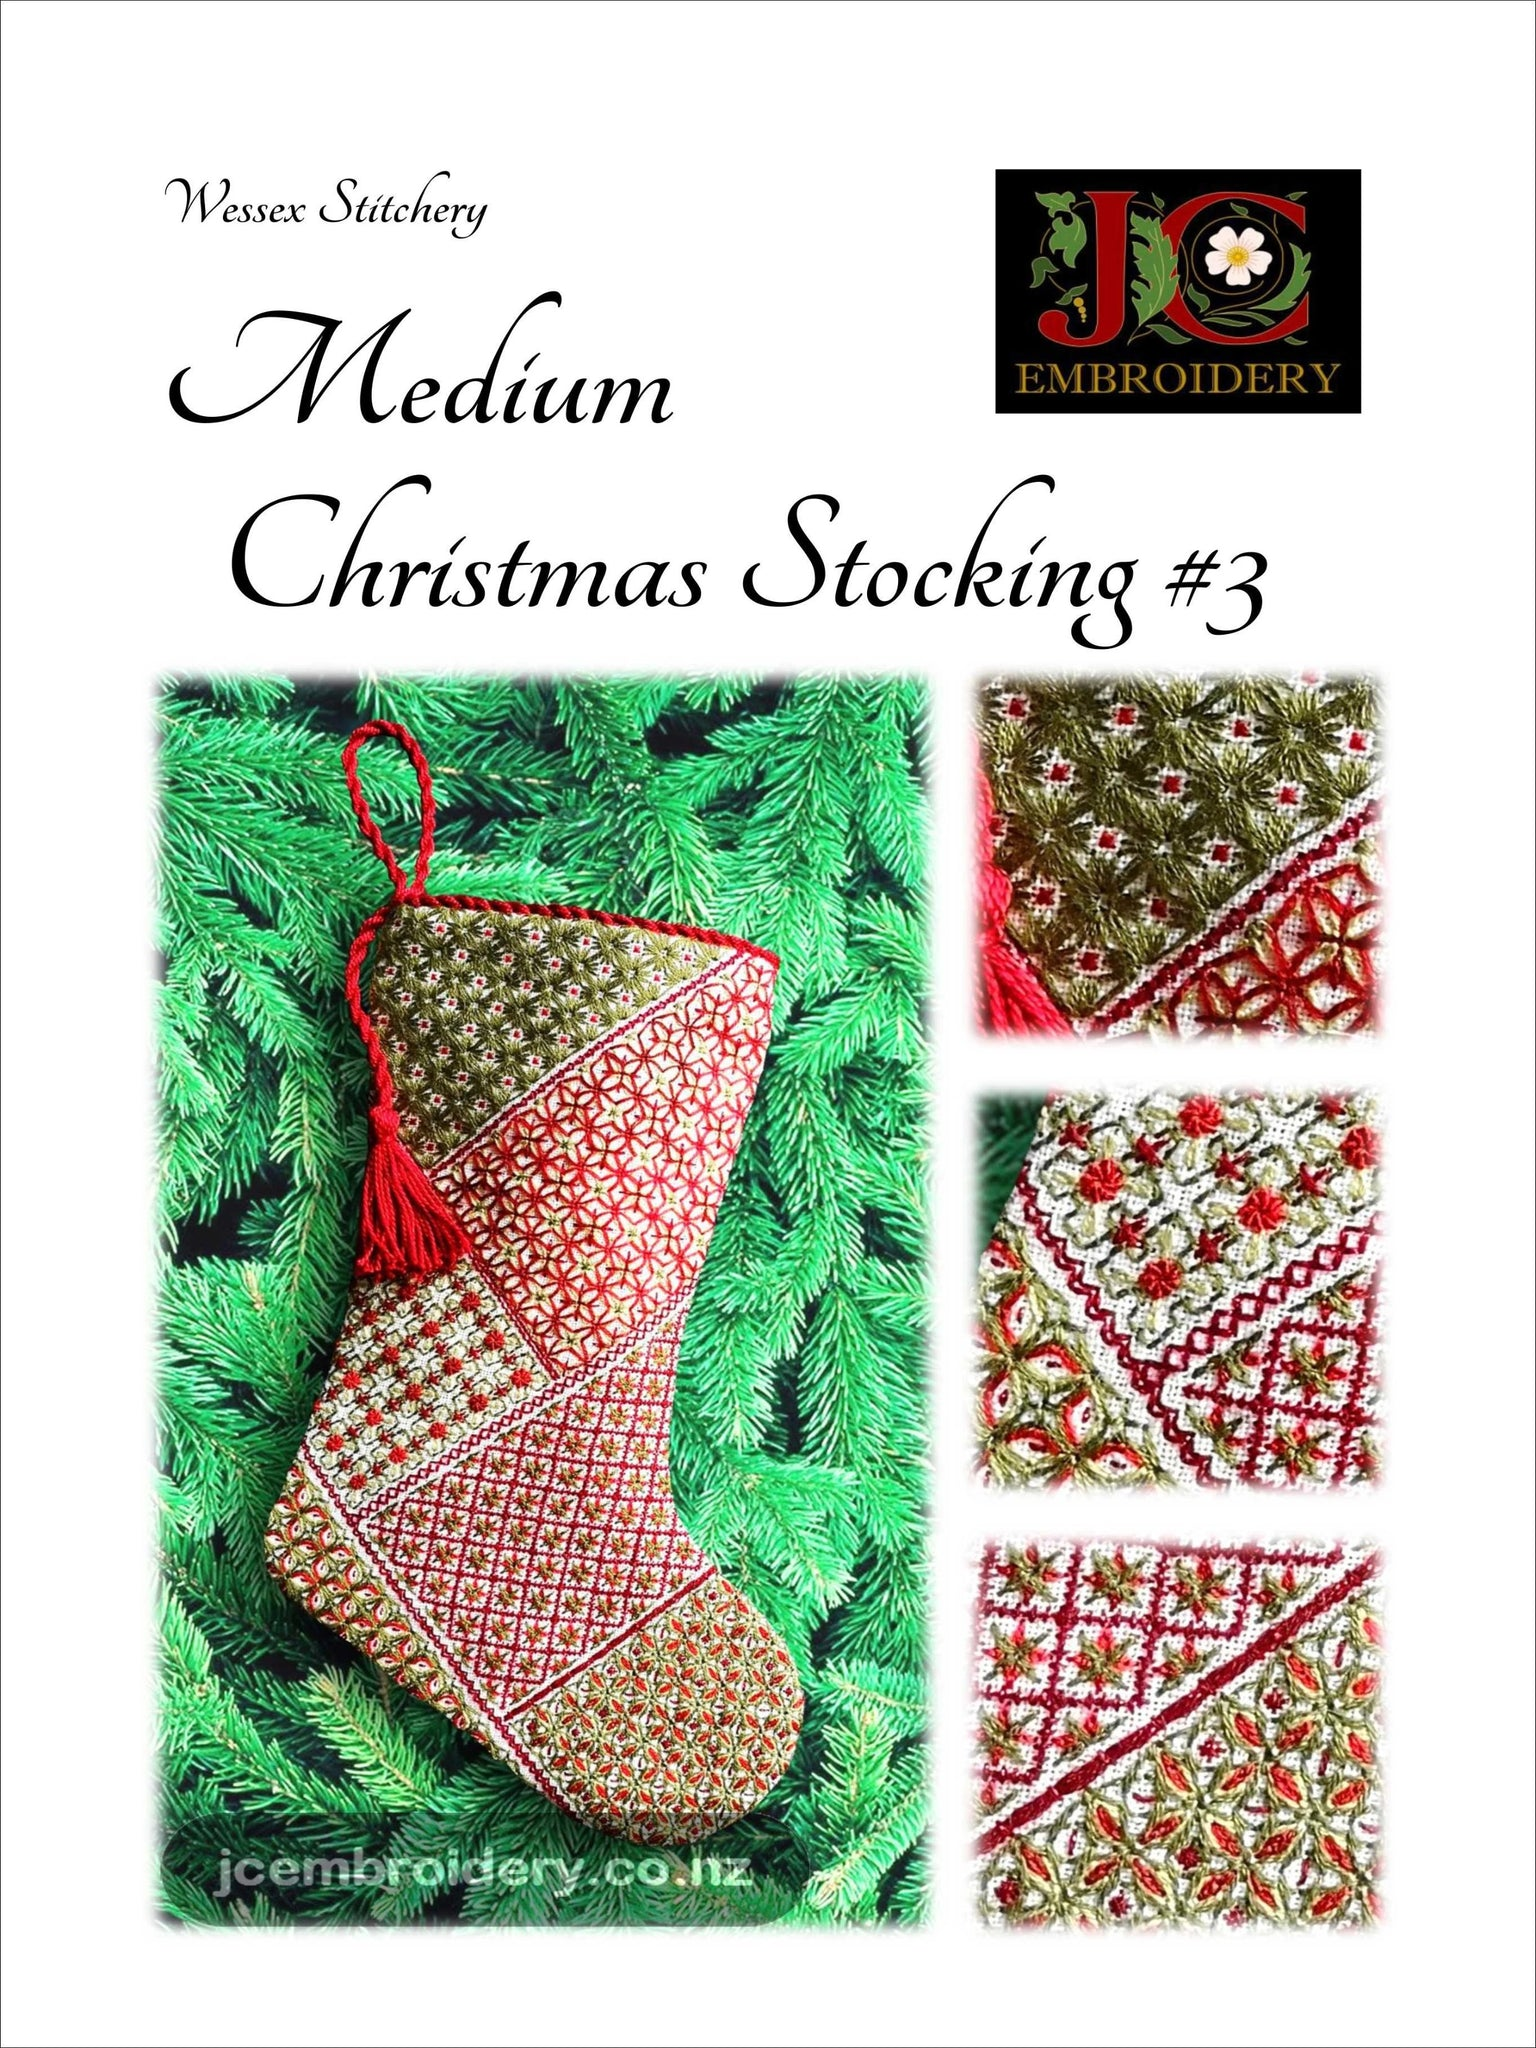 Medium Christmas Stocking #3